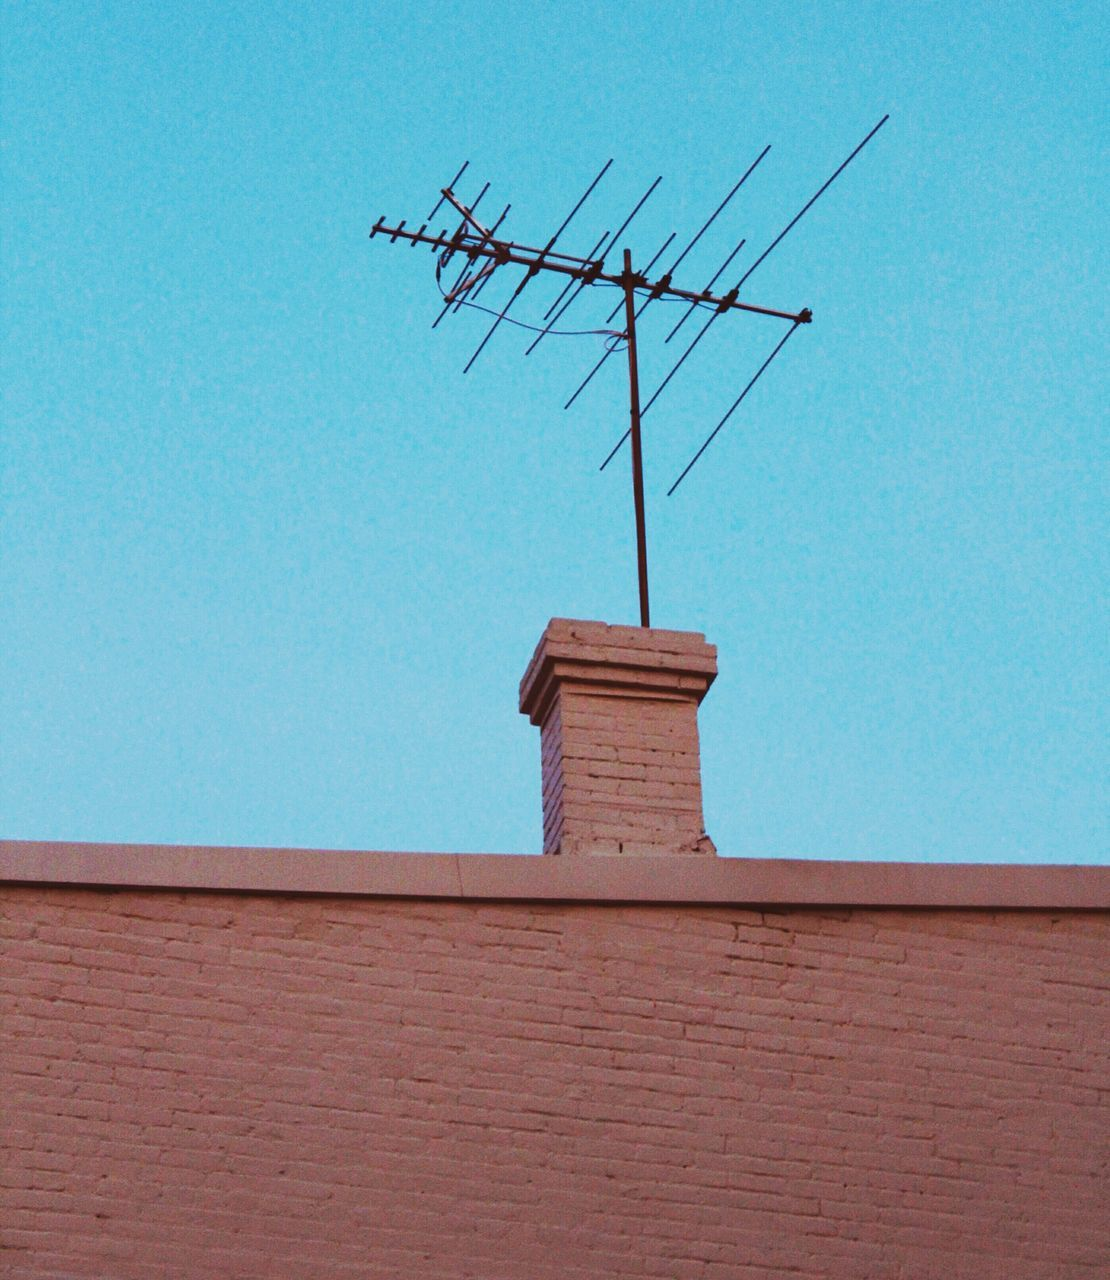 roof, architecture, built structure, antenna - aerial, building exterior, communication, no people, day, low angle view, television aerial, telecommunications equipment, weather vane, outdoors, tiled roof, technology, clear sky, sky